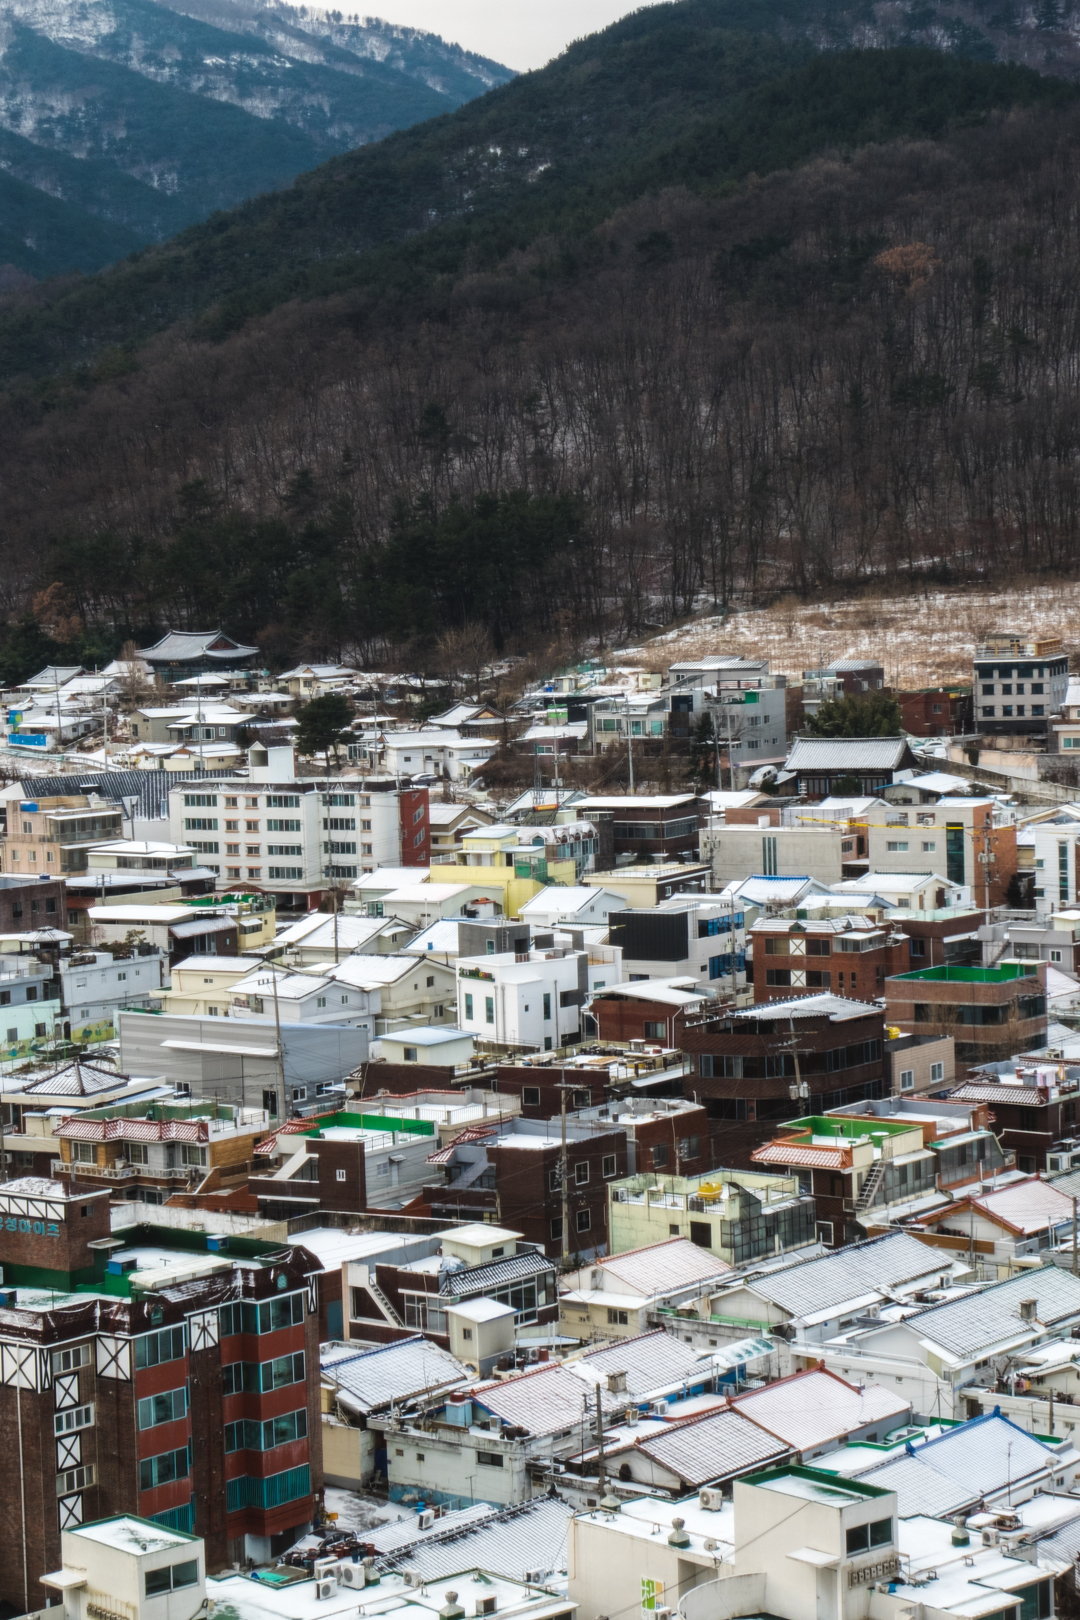 daegu // january 2018